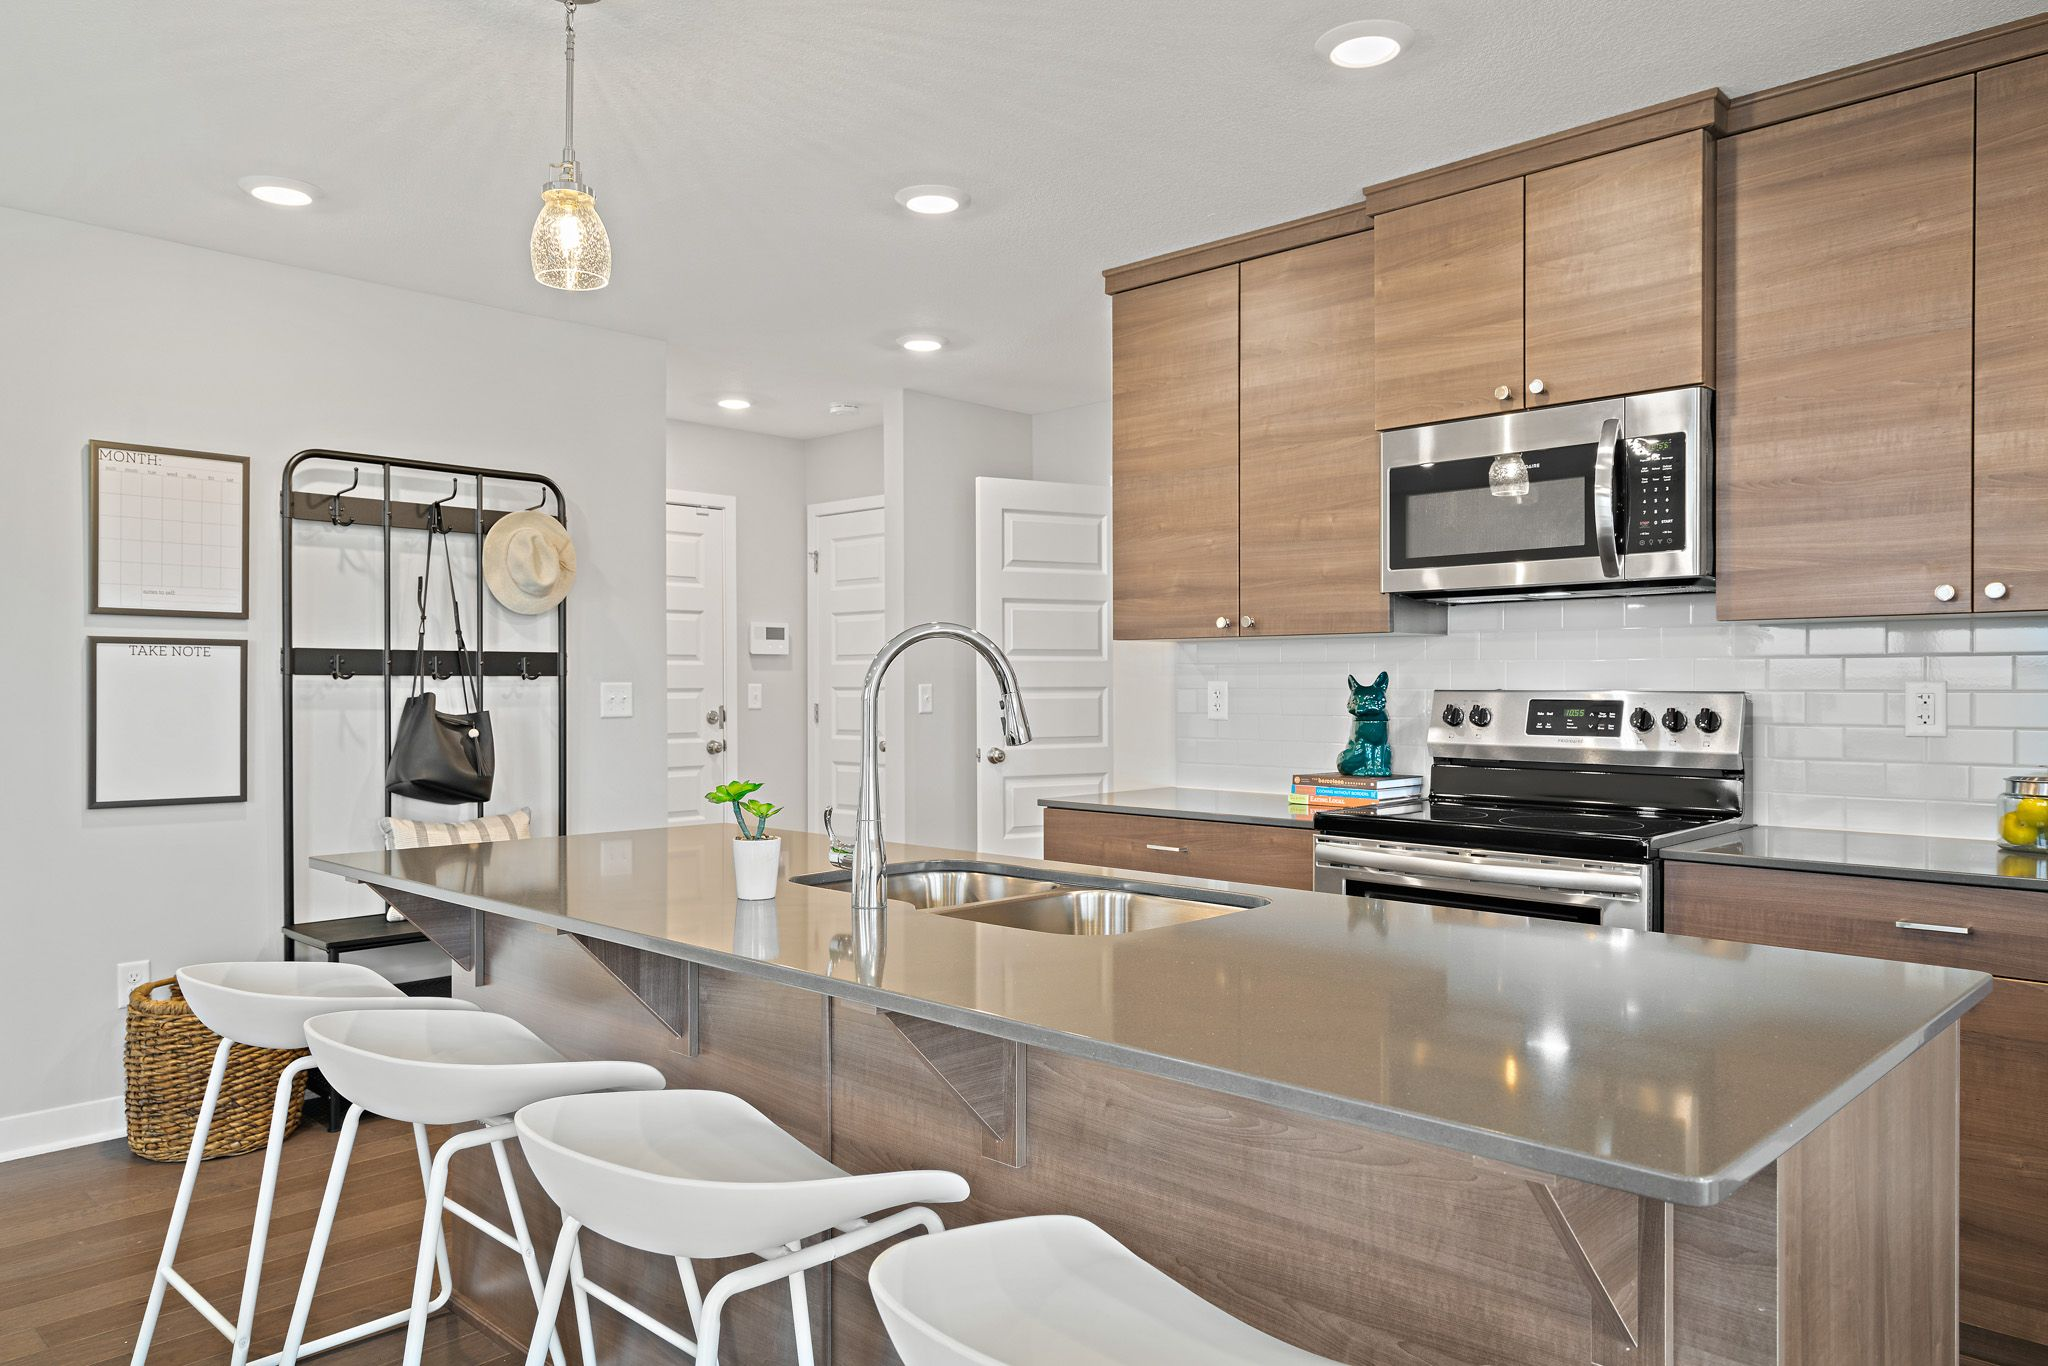 Kitchen featured in the sienna By clover & hive in Des Moines, IA